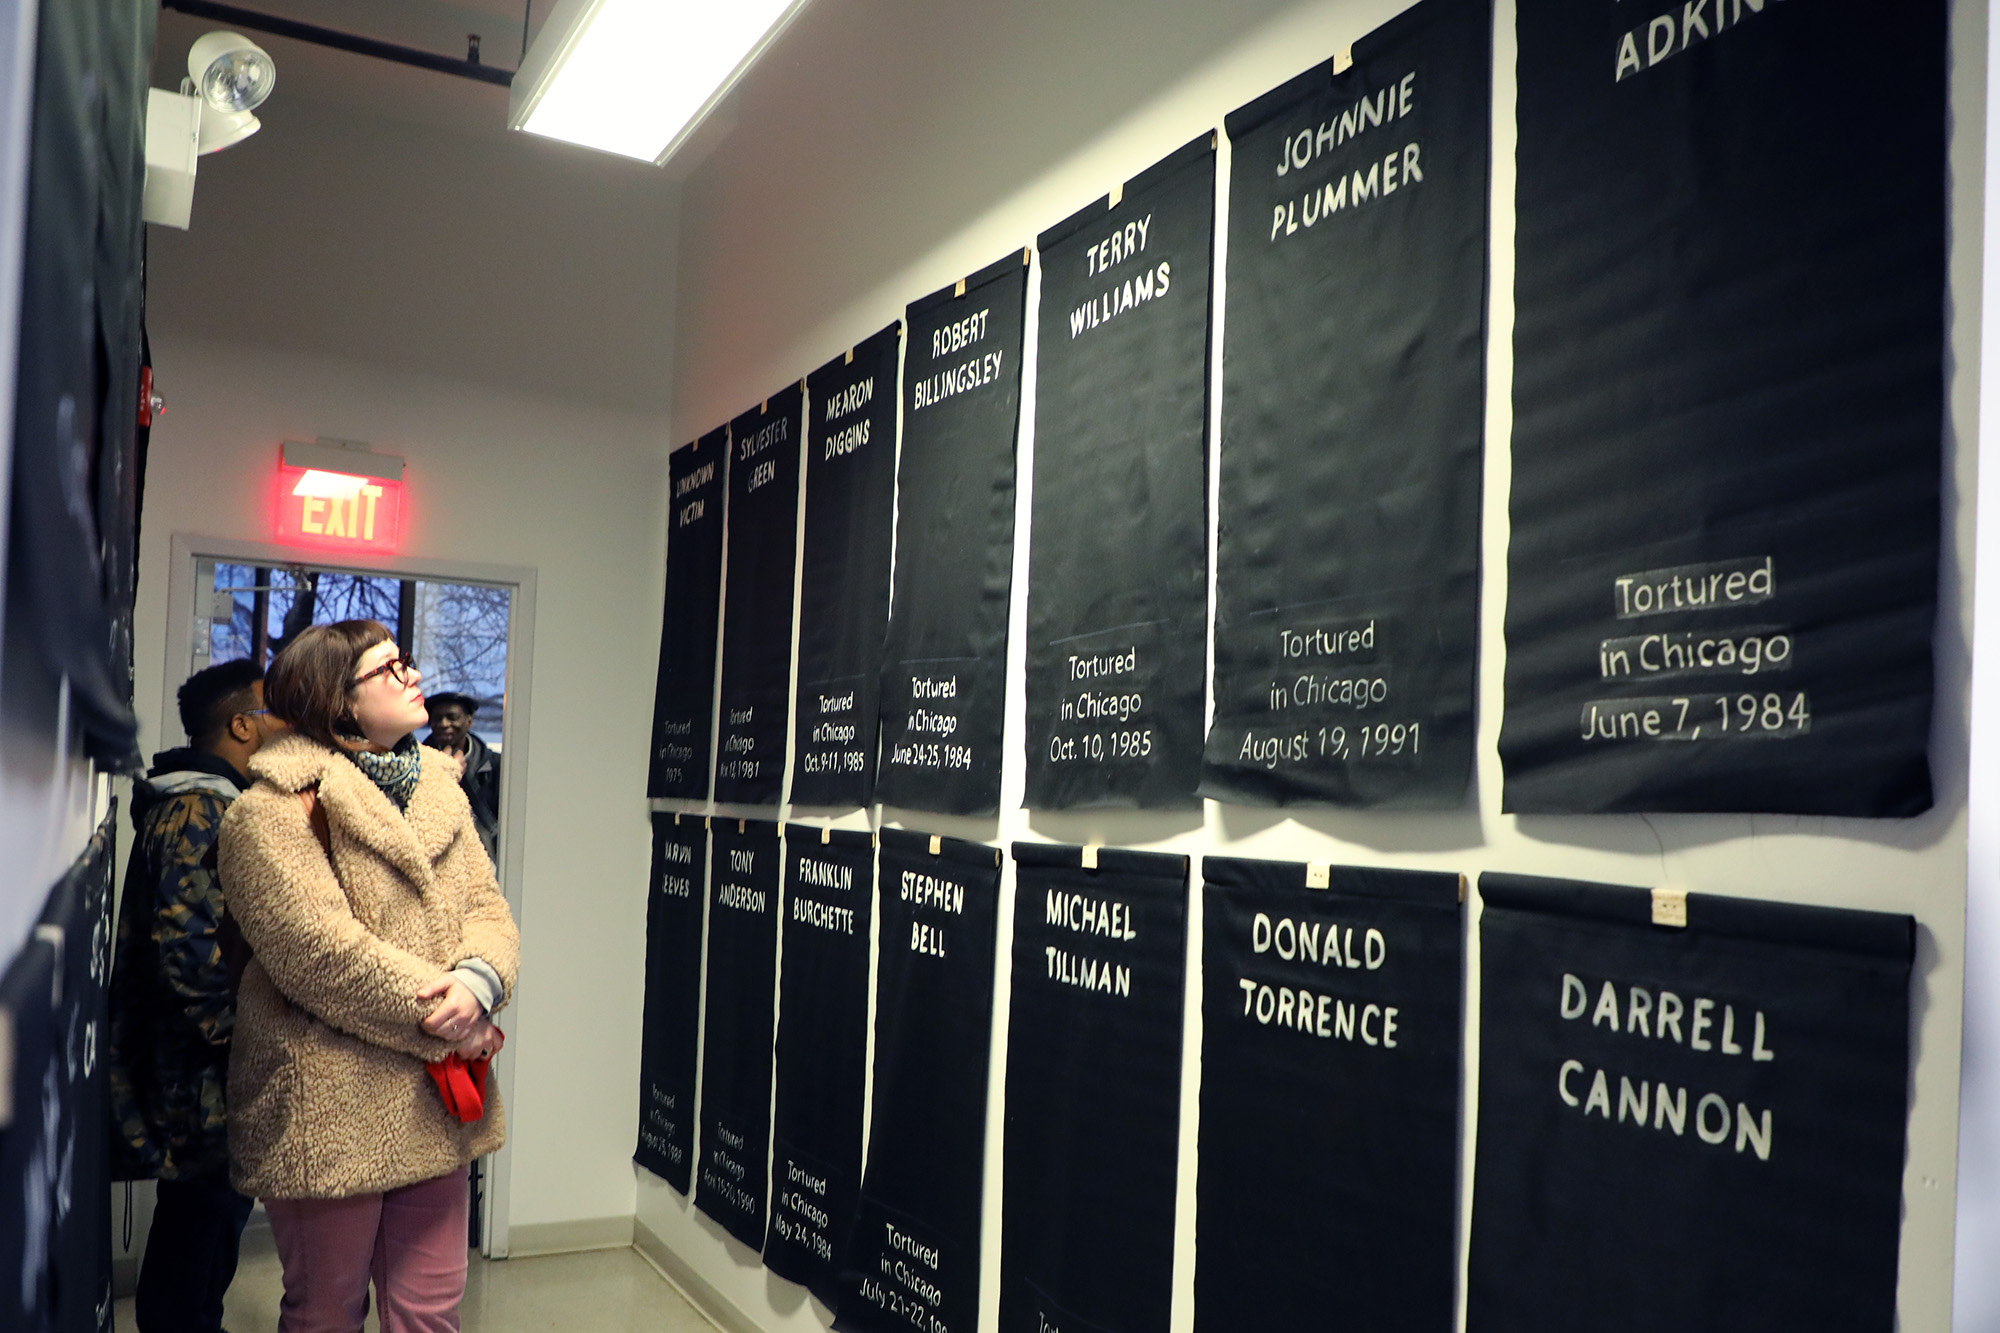 Banners from a 2012 speculative art exhibit that display the names of victims and the dates they were tortured greet visitors as they enter.